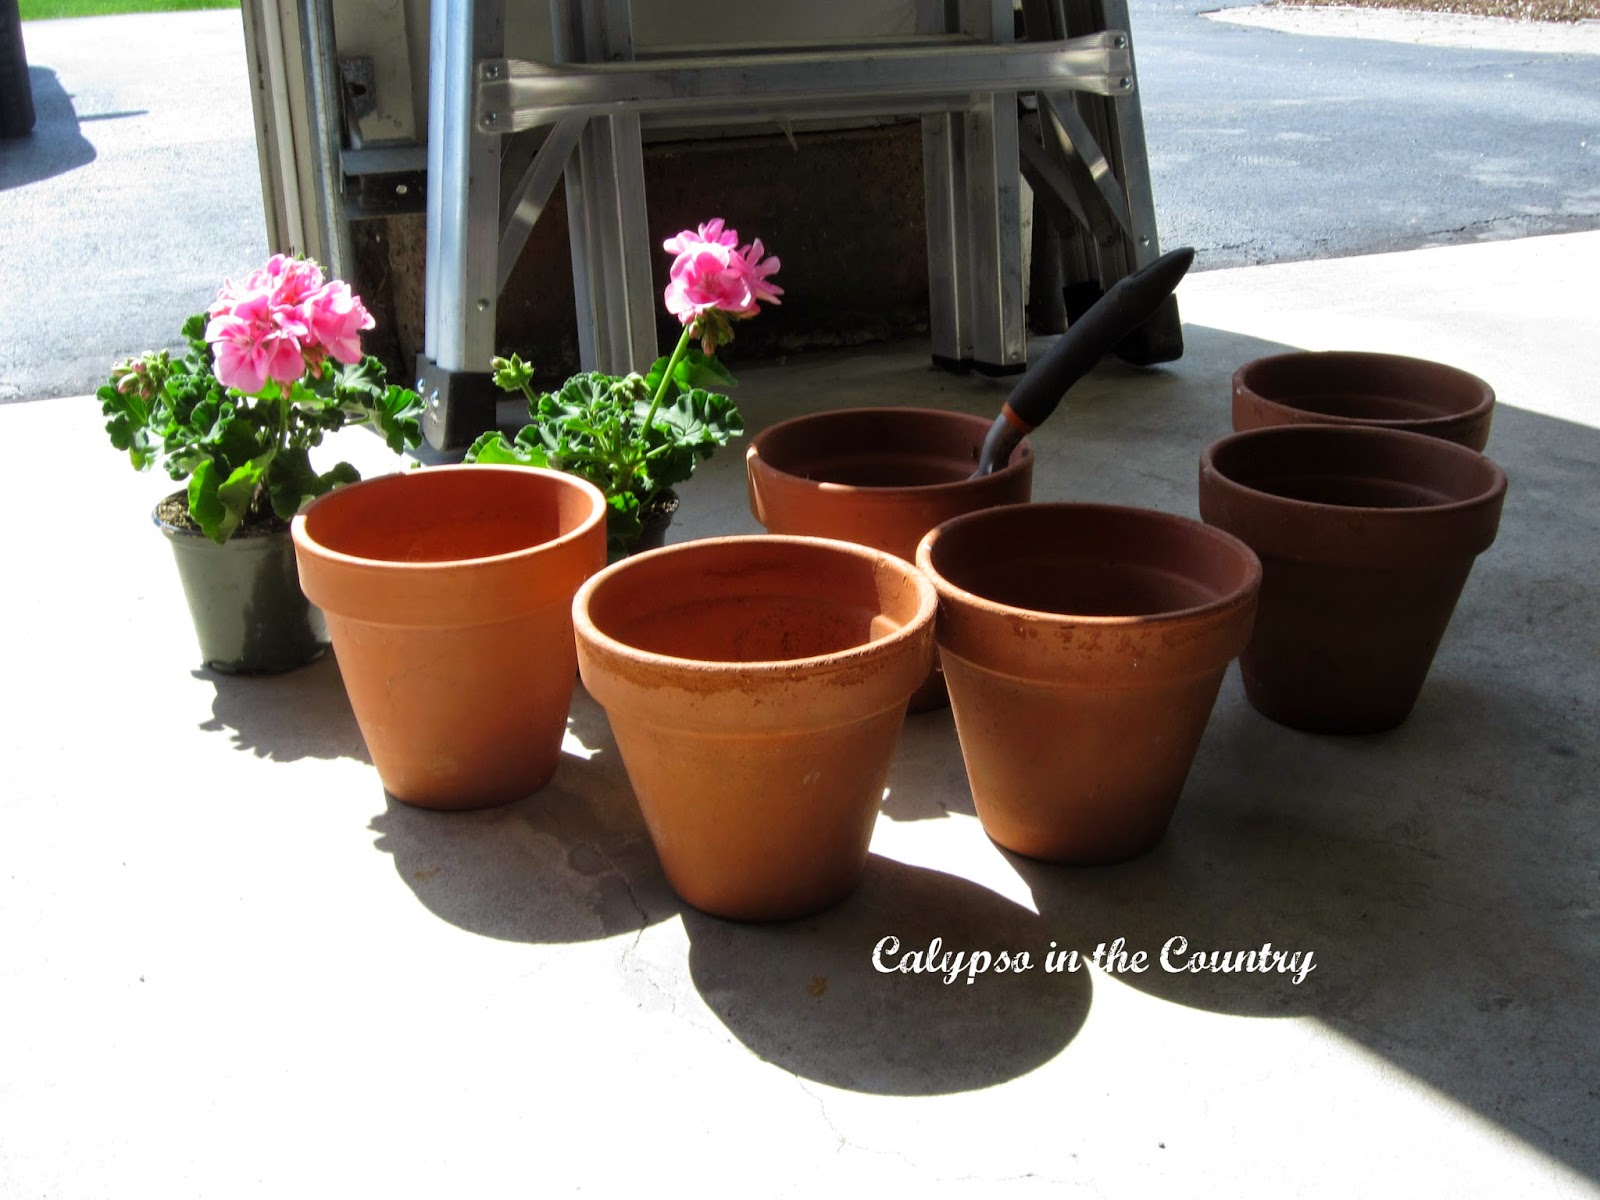 Terra Cotta Pots - Helpful tips for container gardening